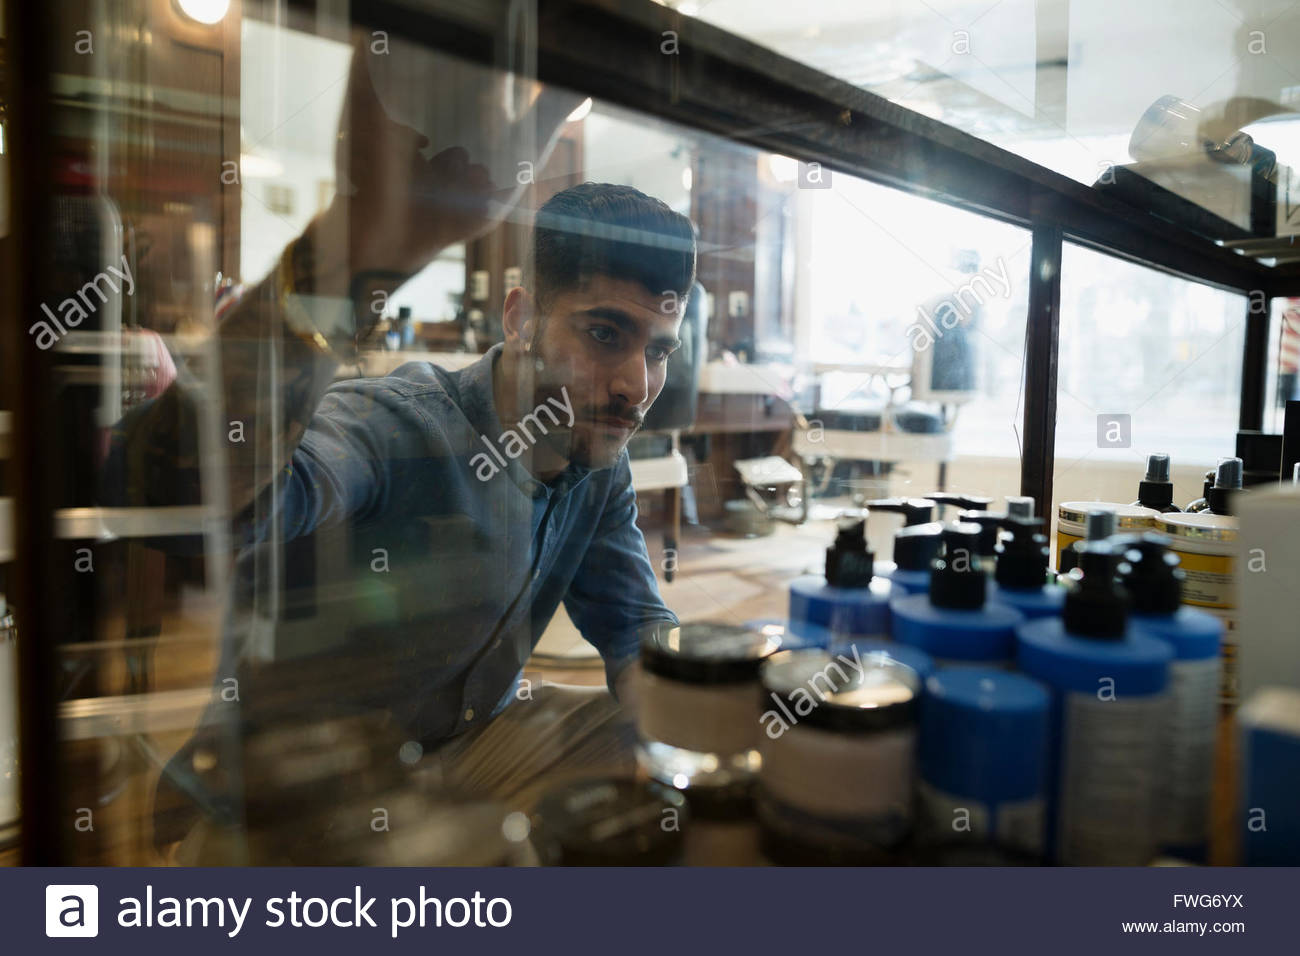 Man browsing hair care products barber shop display - Stock Image